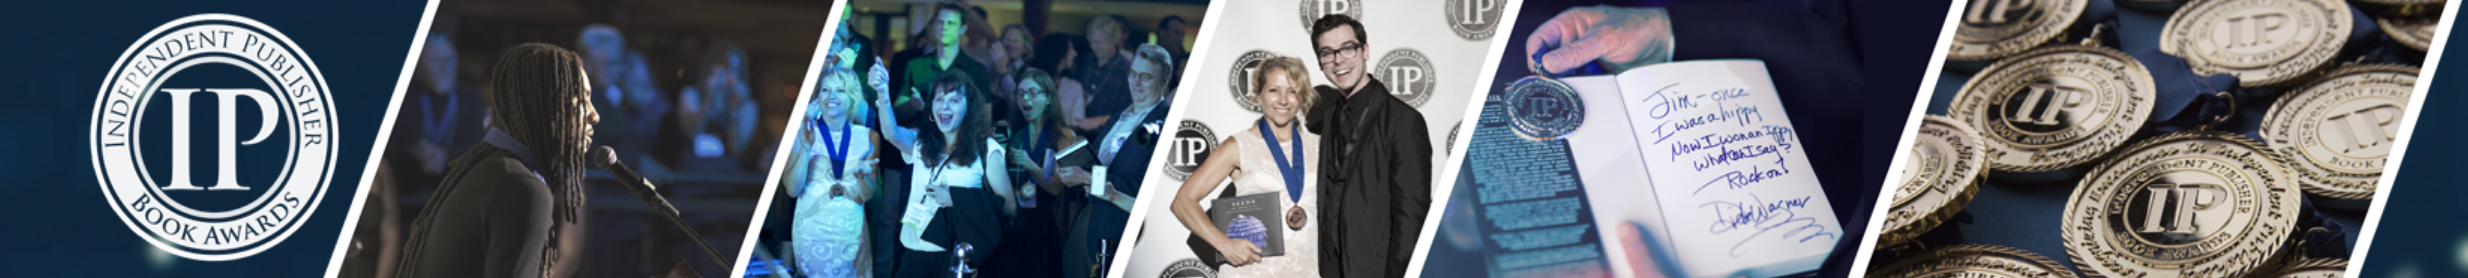 IPPY Awards 2019.jpg